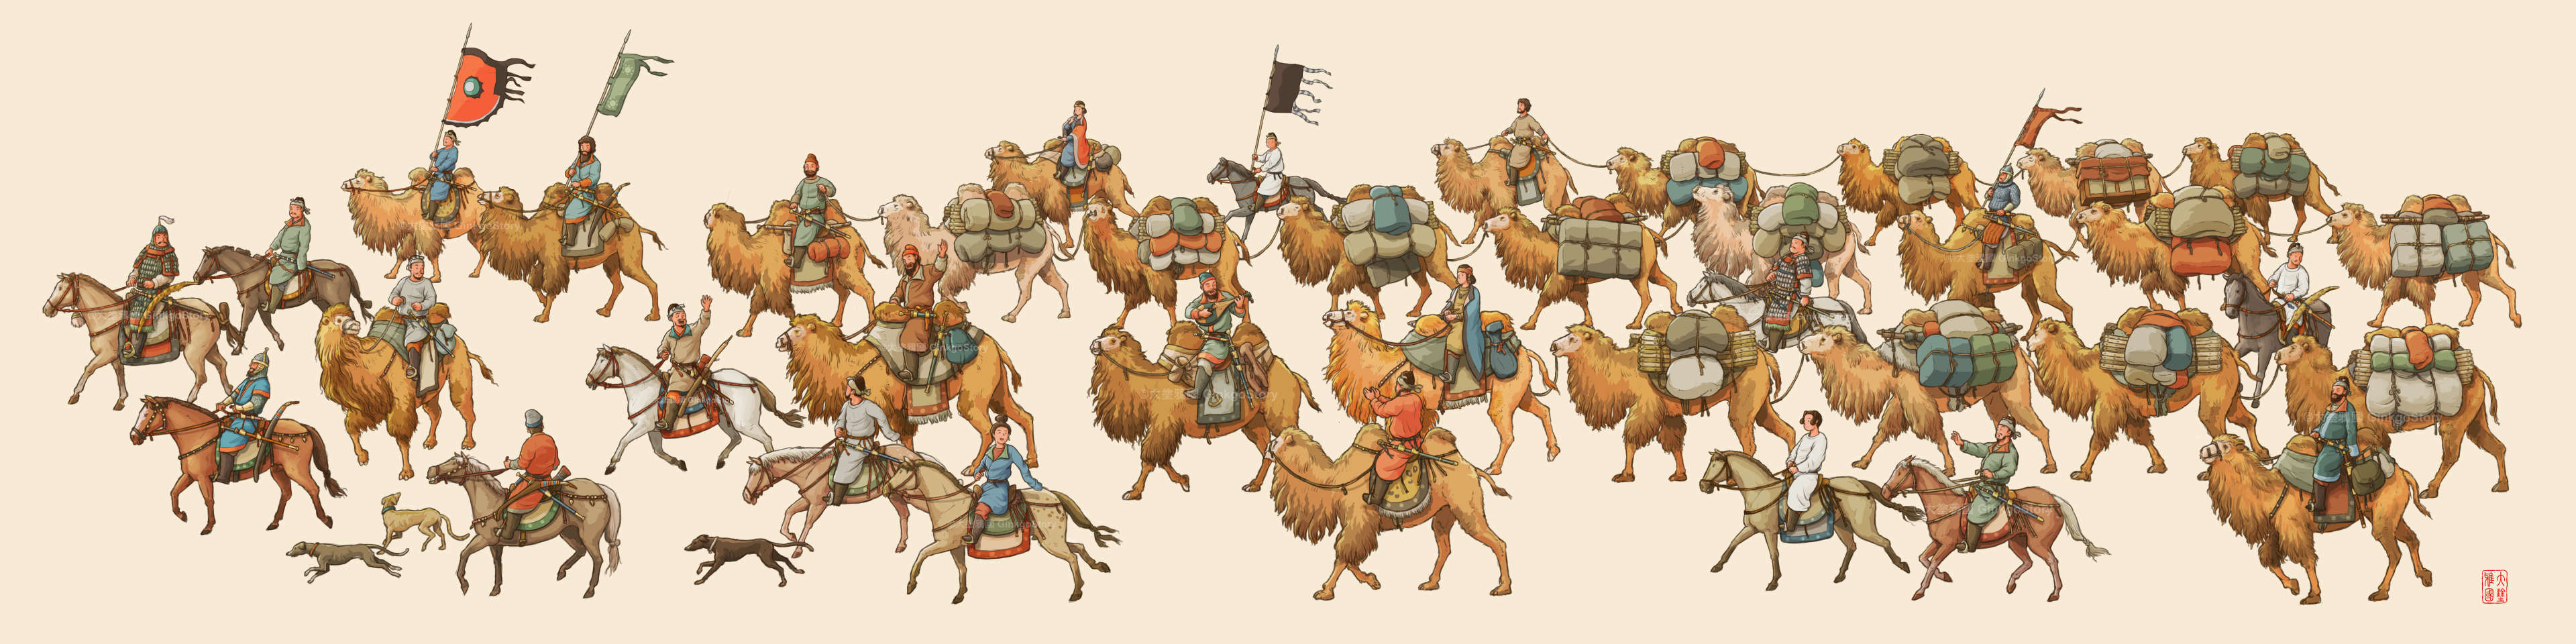 Sogdian Caravan during Tang Dynasty